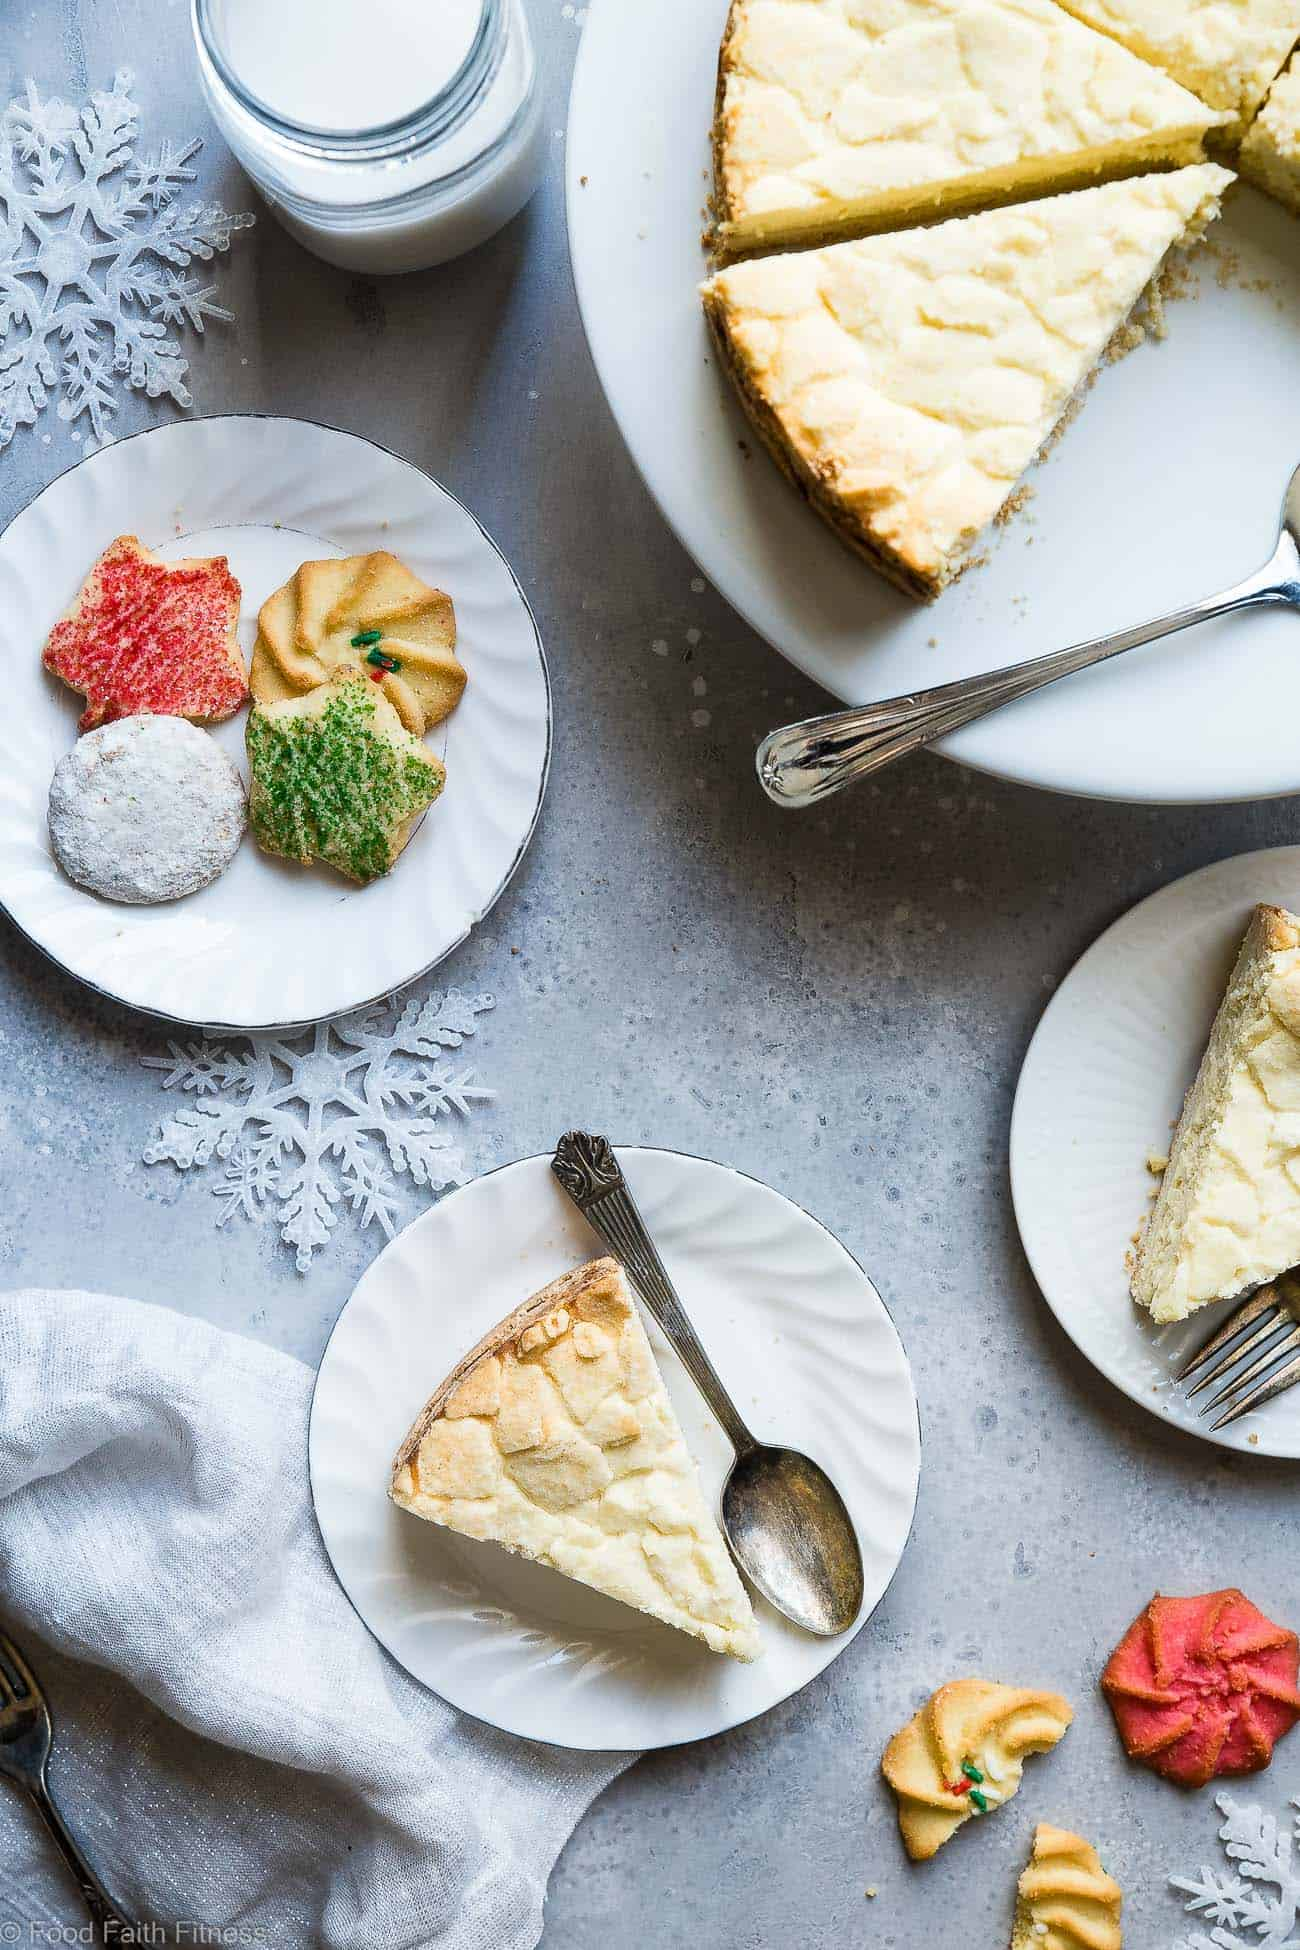 Sugar Free Greek Yogurt Cheesecake - This cheesecake with Greek yogurt is an easy dessert that combines 2 Holiday treats ! It's so creamy you won't believe it's healthy, sugar free and only 235 calories! | Foodfaithfitness.com | @FoodFaithFit